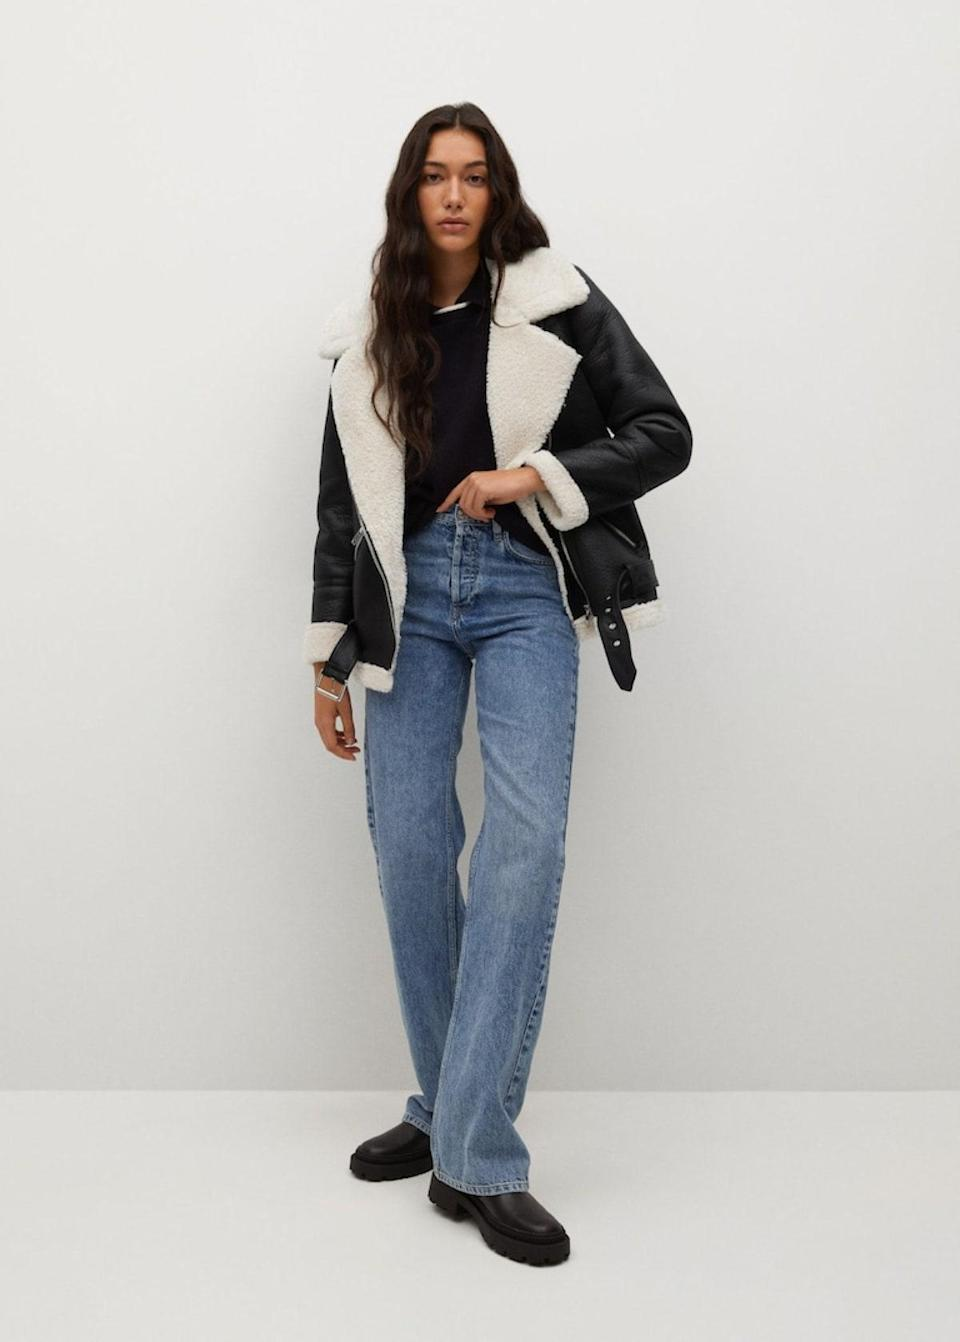 """No need to go for a classic teddy bear coat if you don't want to. This aviator iteration is a low-key entrance into teddy-bear territory—and we love it styled with jeans and <a href=""""https://www.glamour.com/story/best-fall-shoes?mbid=synd_yahoo_rss"""" rel=""""nofollow noopener"""" target=""""_blank"""" data-ylk=""""slk:lug-sole Chelsea boots"""" class=""""link rapid-noclick-resp"""">lug-sole Chelsea boots</a>. $150, Mango. <a href=""""https://shop.mango.com/us/women/coats-coats/faux-shearling-oversized-coat_17074038.html"""" rel=""""nofollow noopener"""" target=""""_blank"""" data-ylk=""""slk:Get it now!"""" class=""""link rapid-noclick-resp"""">Get it now!</a>"""